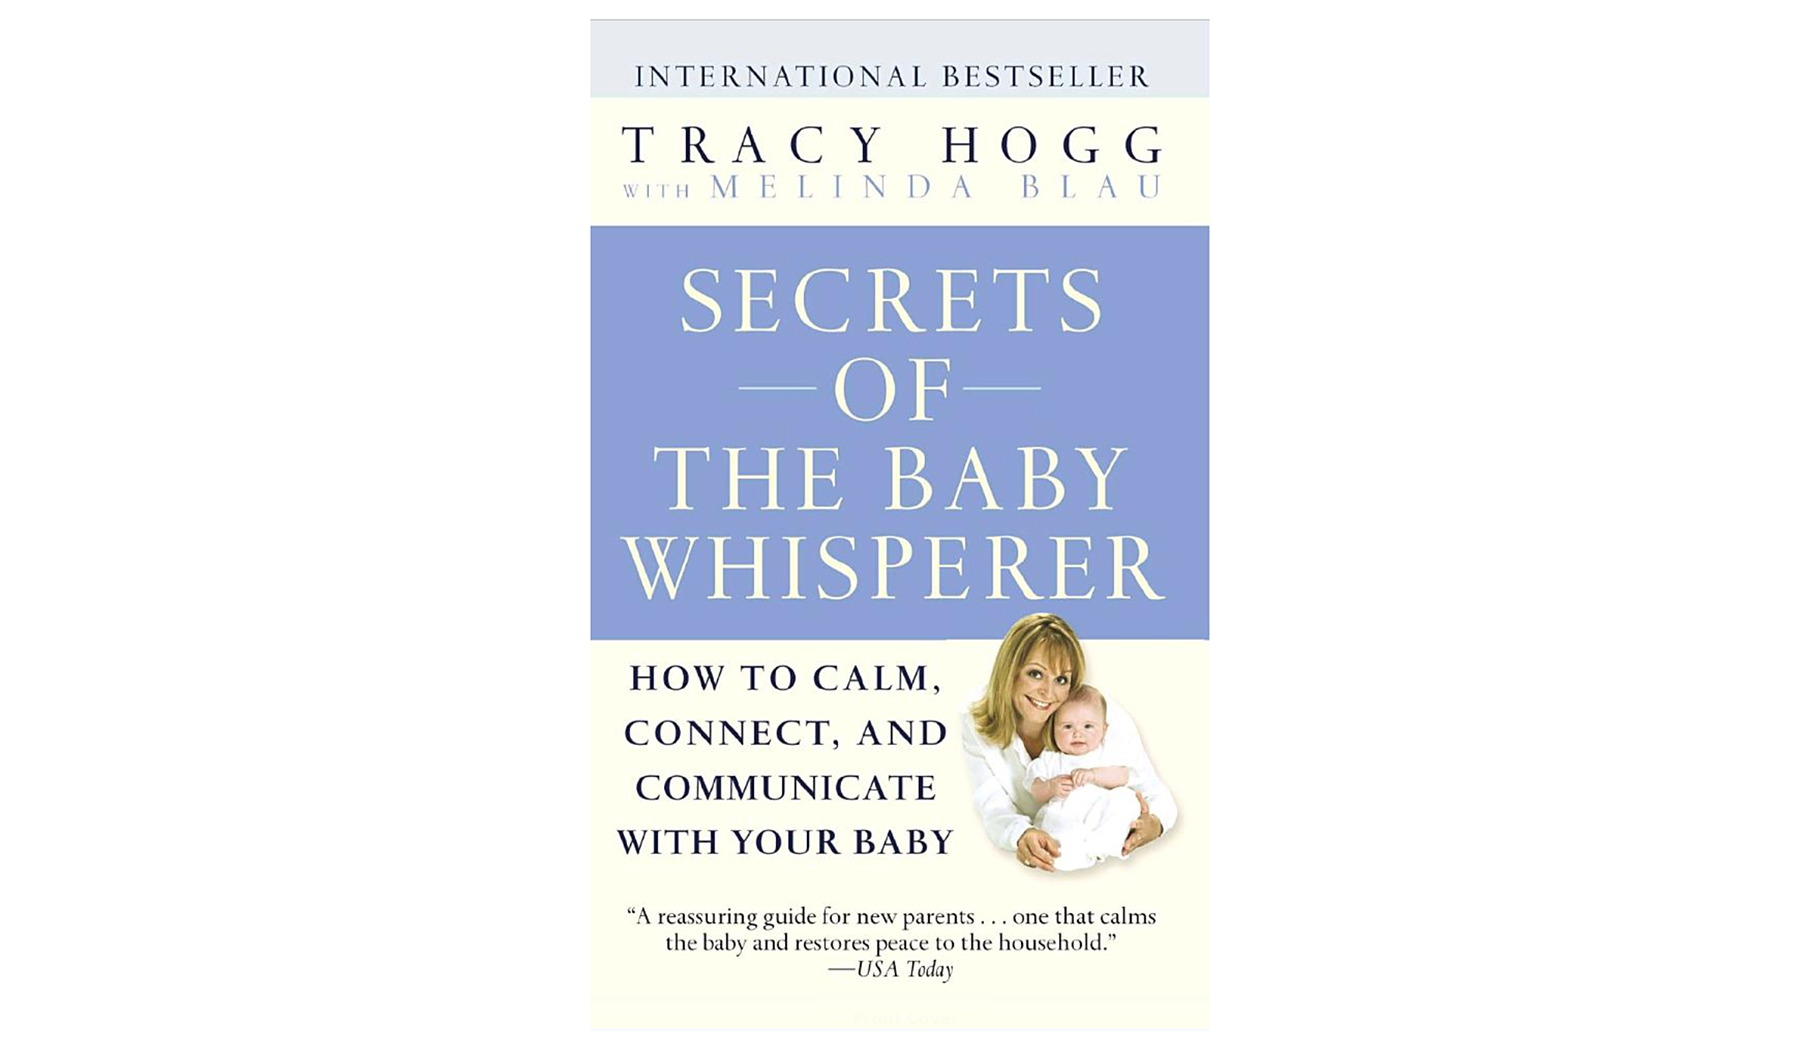 ‪Secrets of the Baby Whisperer, by Tracy Hogg